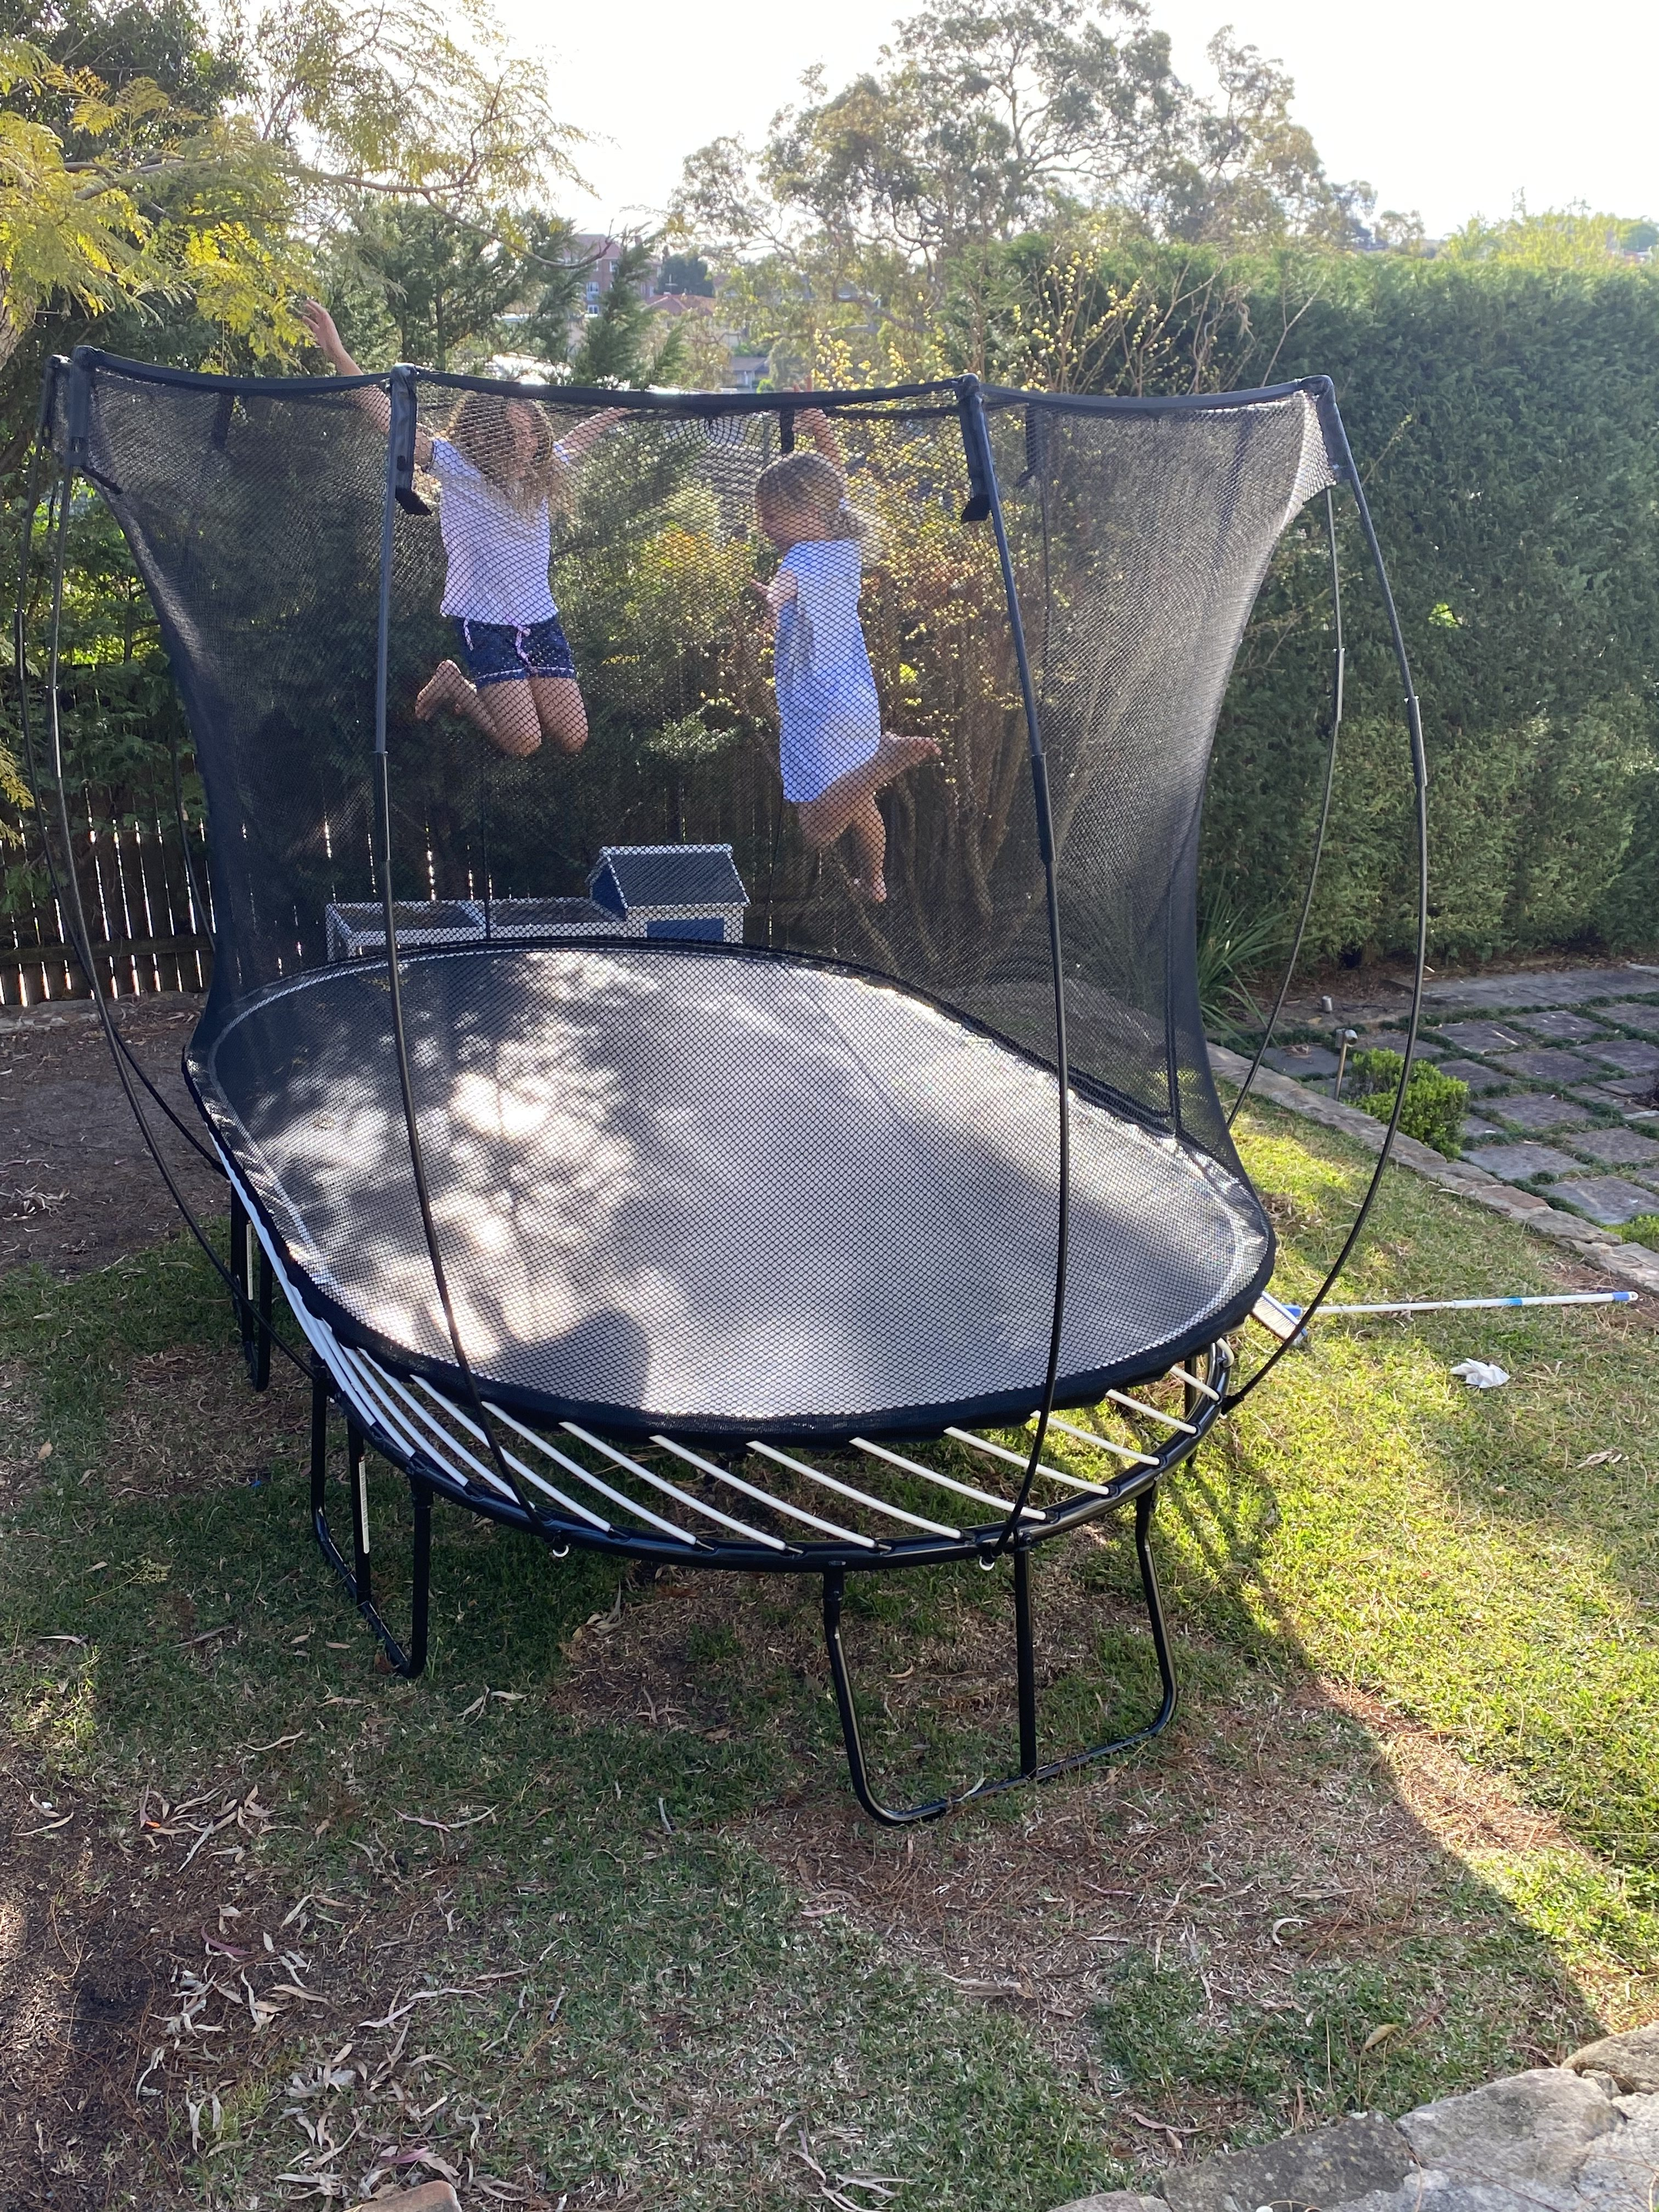 David's two girls jump high on their trampoline